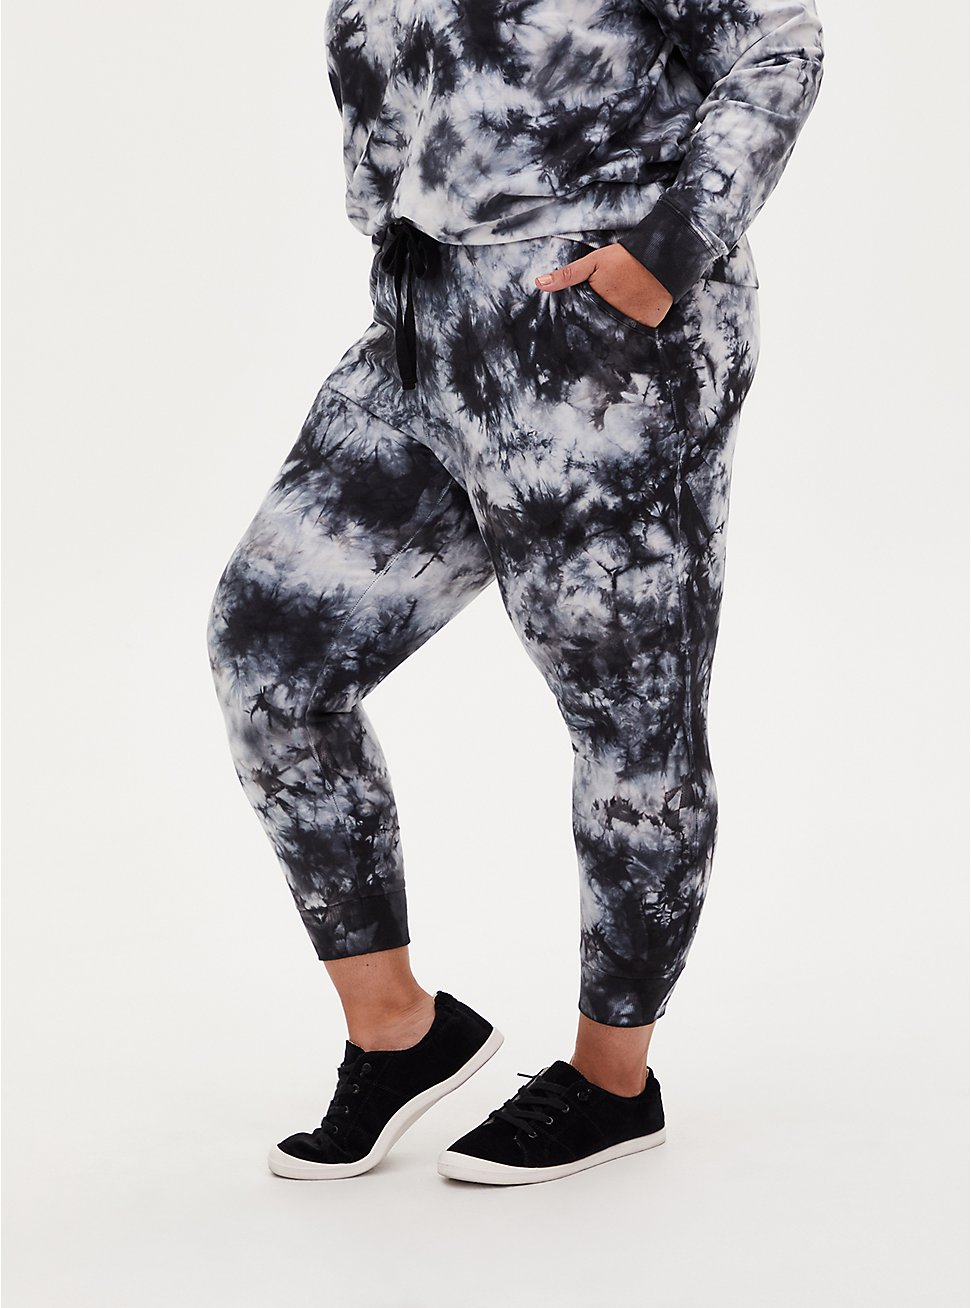 Classic Fit Active Jogger - Terry Tie-Dye Black & Grey, TIE DYE, hi-res